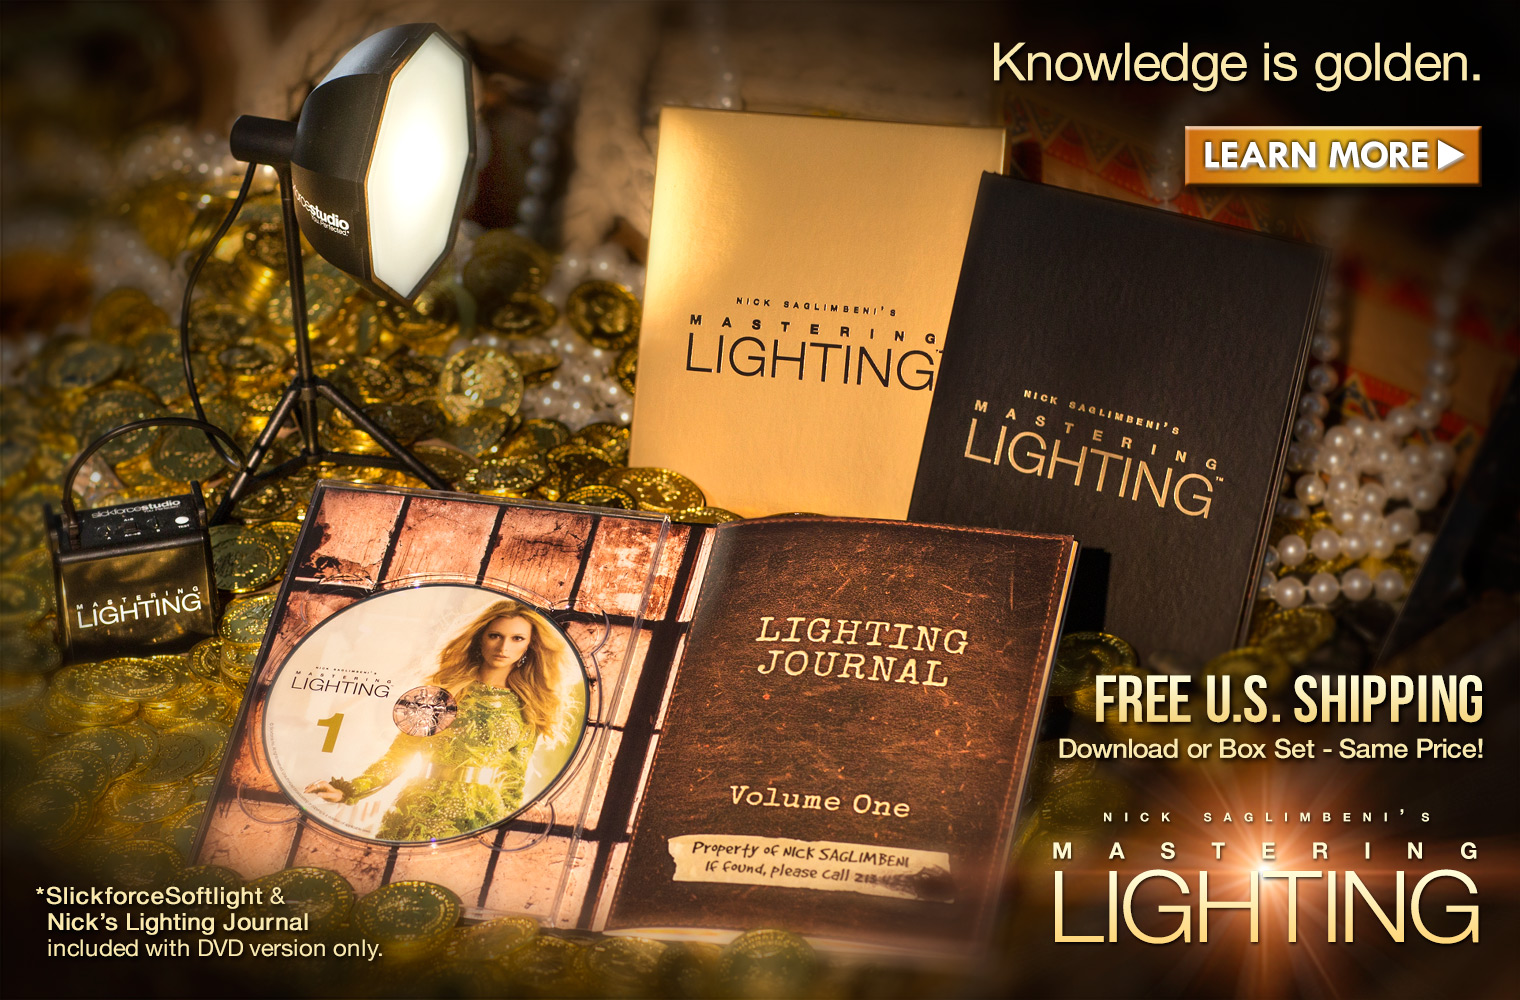 ad-mastering-lighting-treasure-front-page